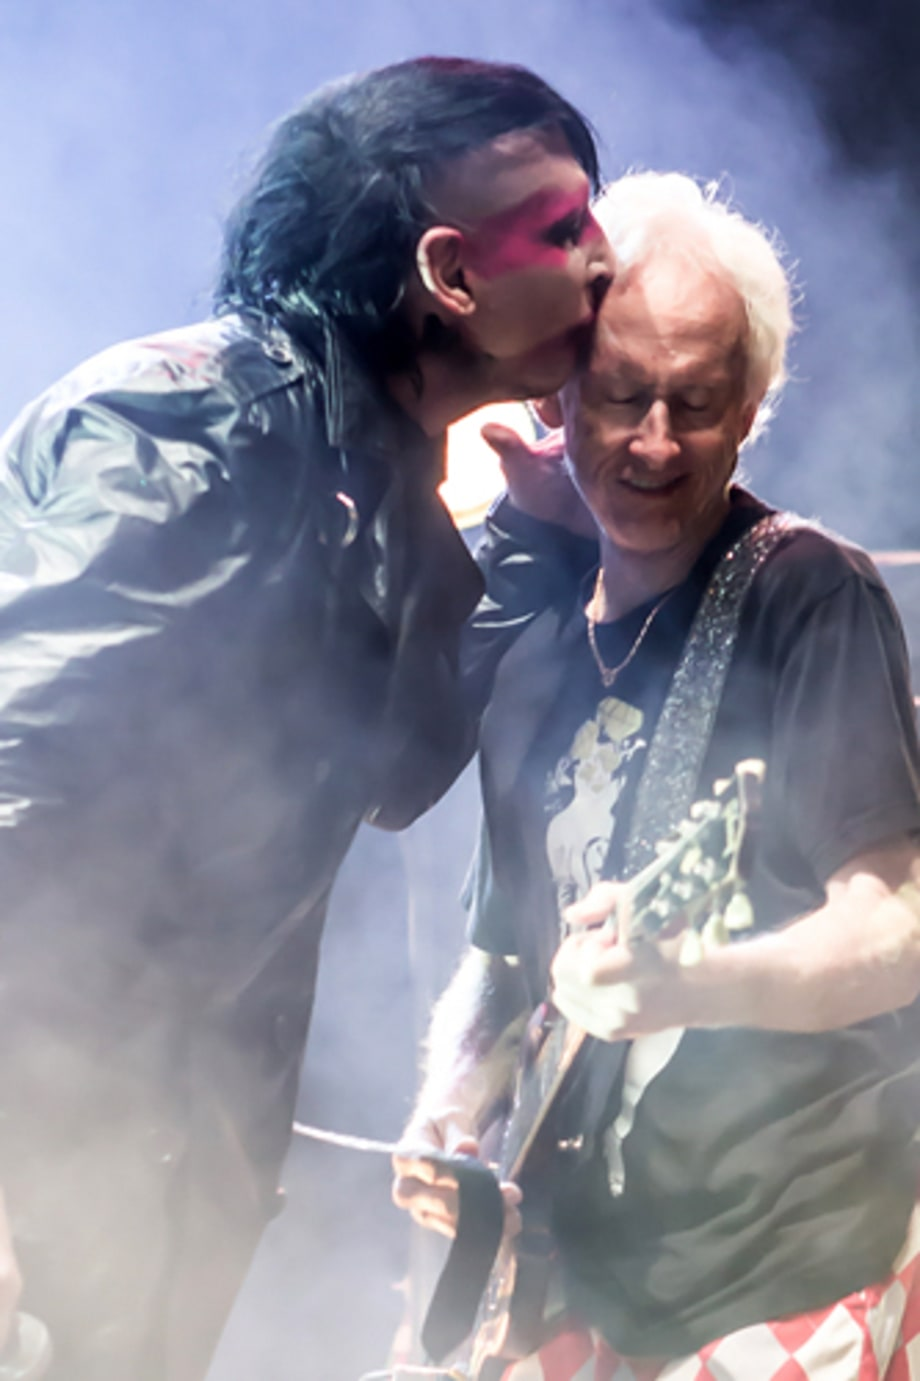 A Kiss From Manson